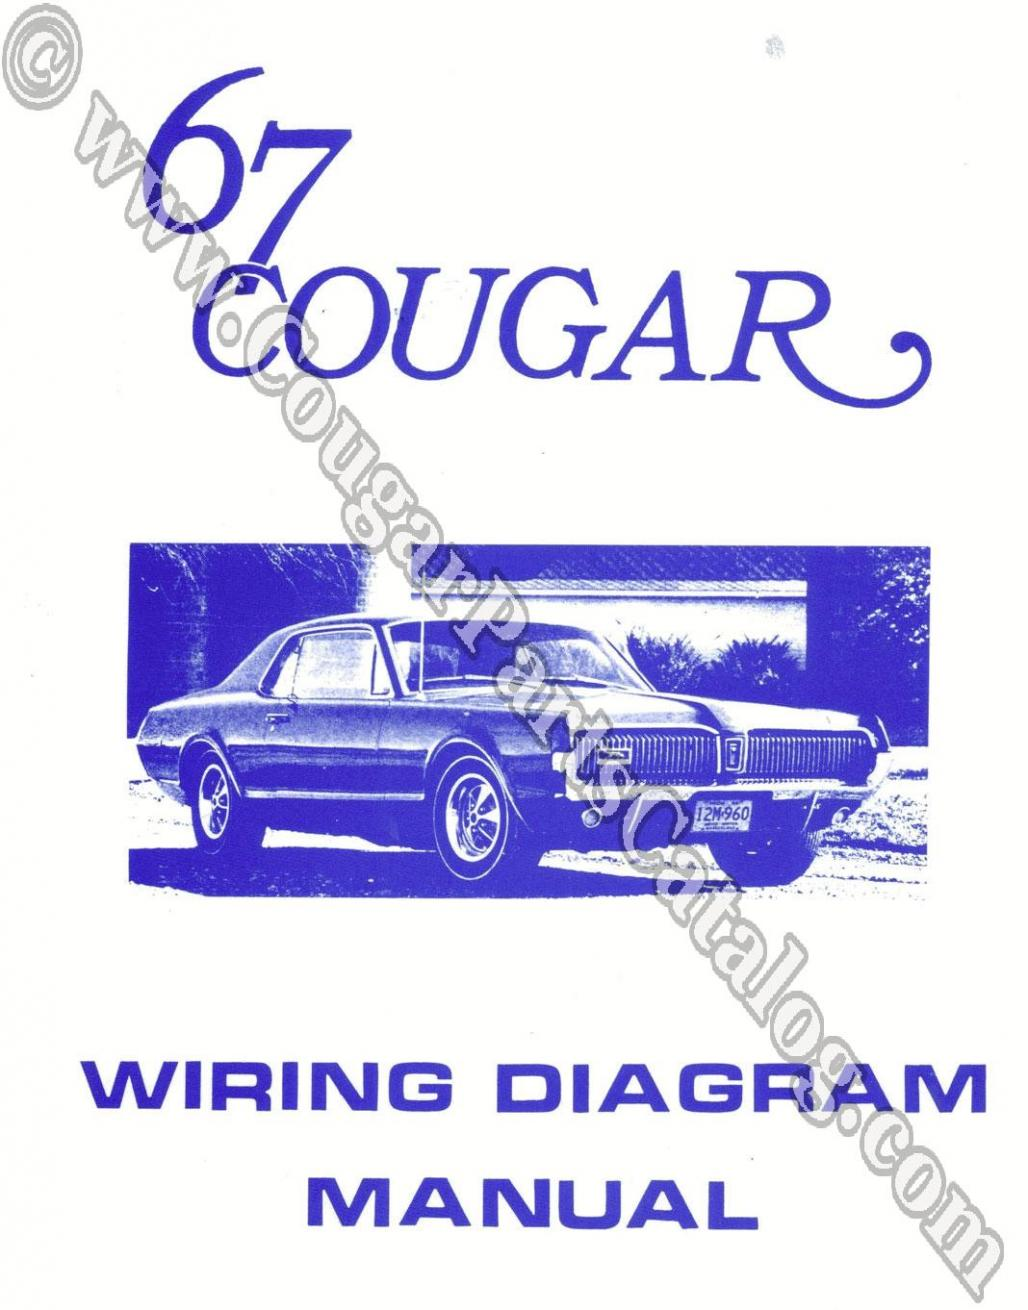 1968 Mercury Cougar Sequential Turn Signal Wiring Diagram